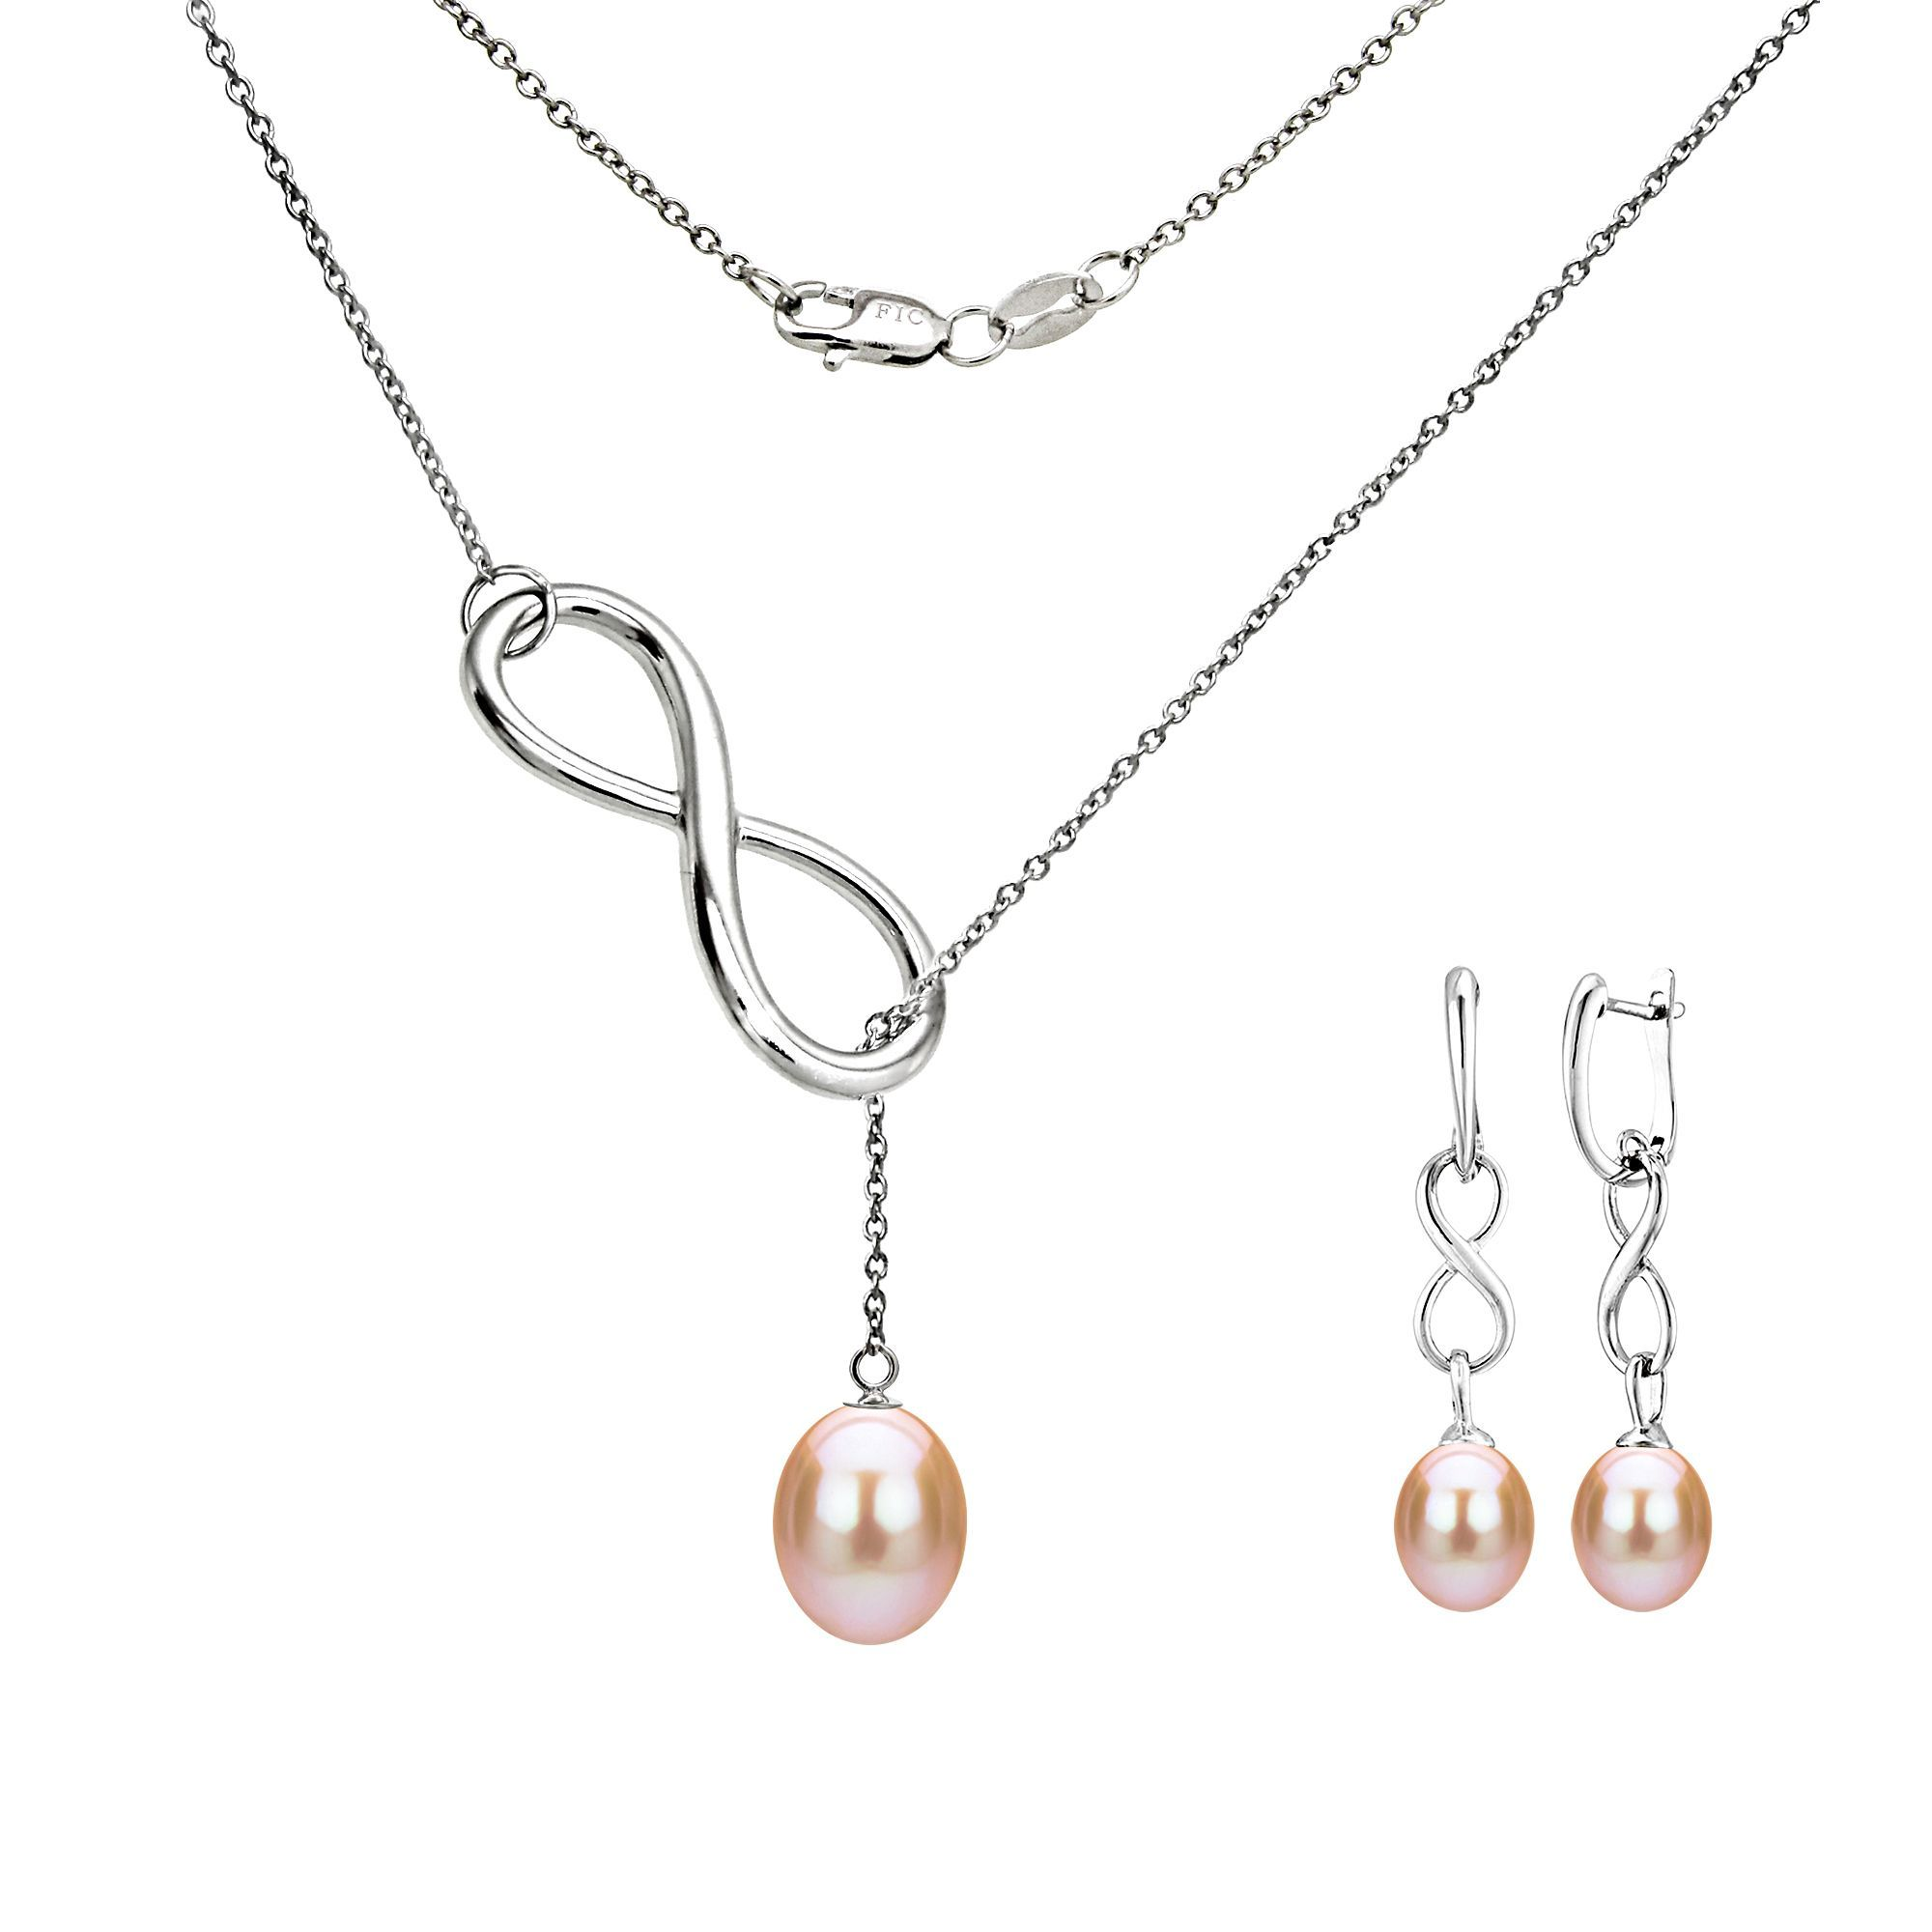 for pearl dainty silver shades of freshwater aaa pink fullsizerender women floating pearls sterling simple chain three with pendant necklace products